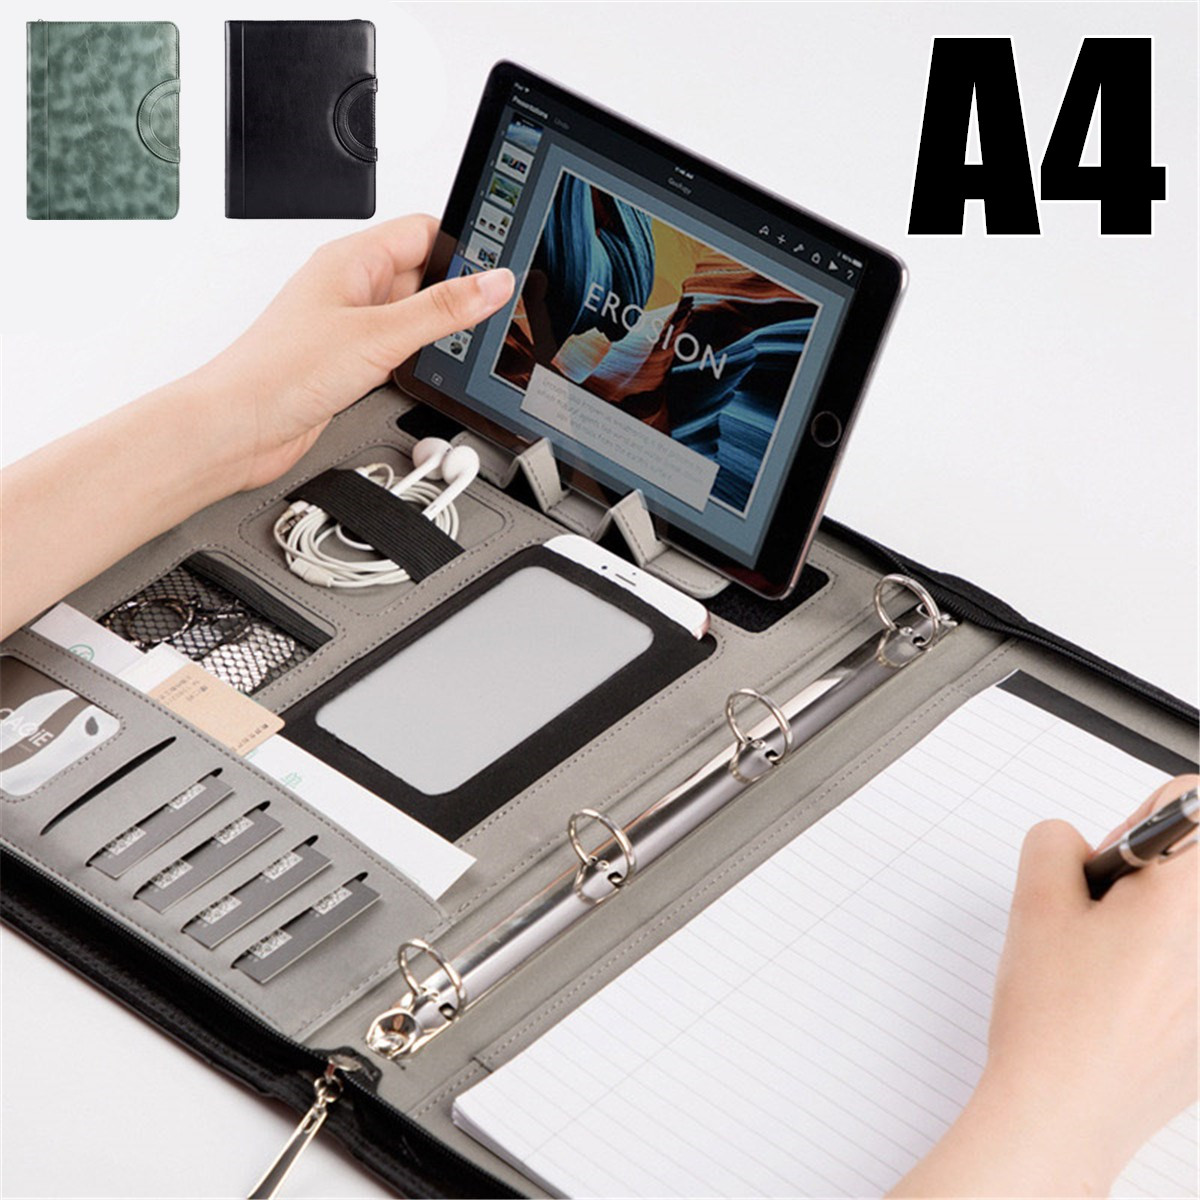 Multi-functional Leather A4 Document Bags School Office Manager File Folder Portable Zipper Storage Bag With A4 20 Sheets PaperMulti-functional Leather A4 Document Bags School Office Manager File Folder Portable Zipper Storage Bag With A4 20 Sheets Paper